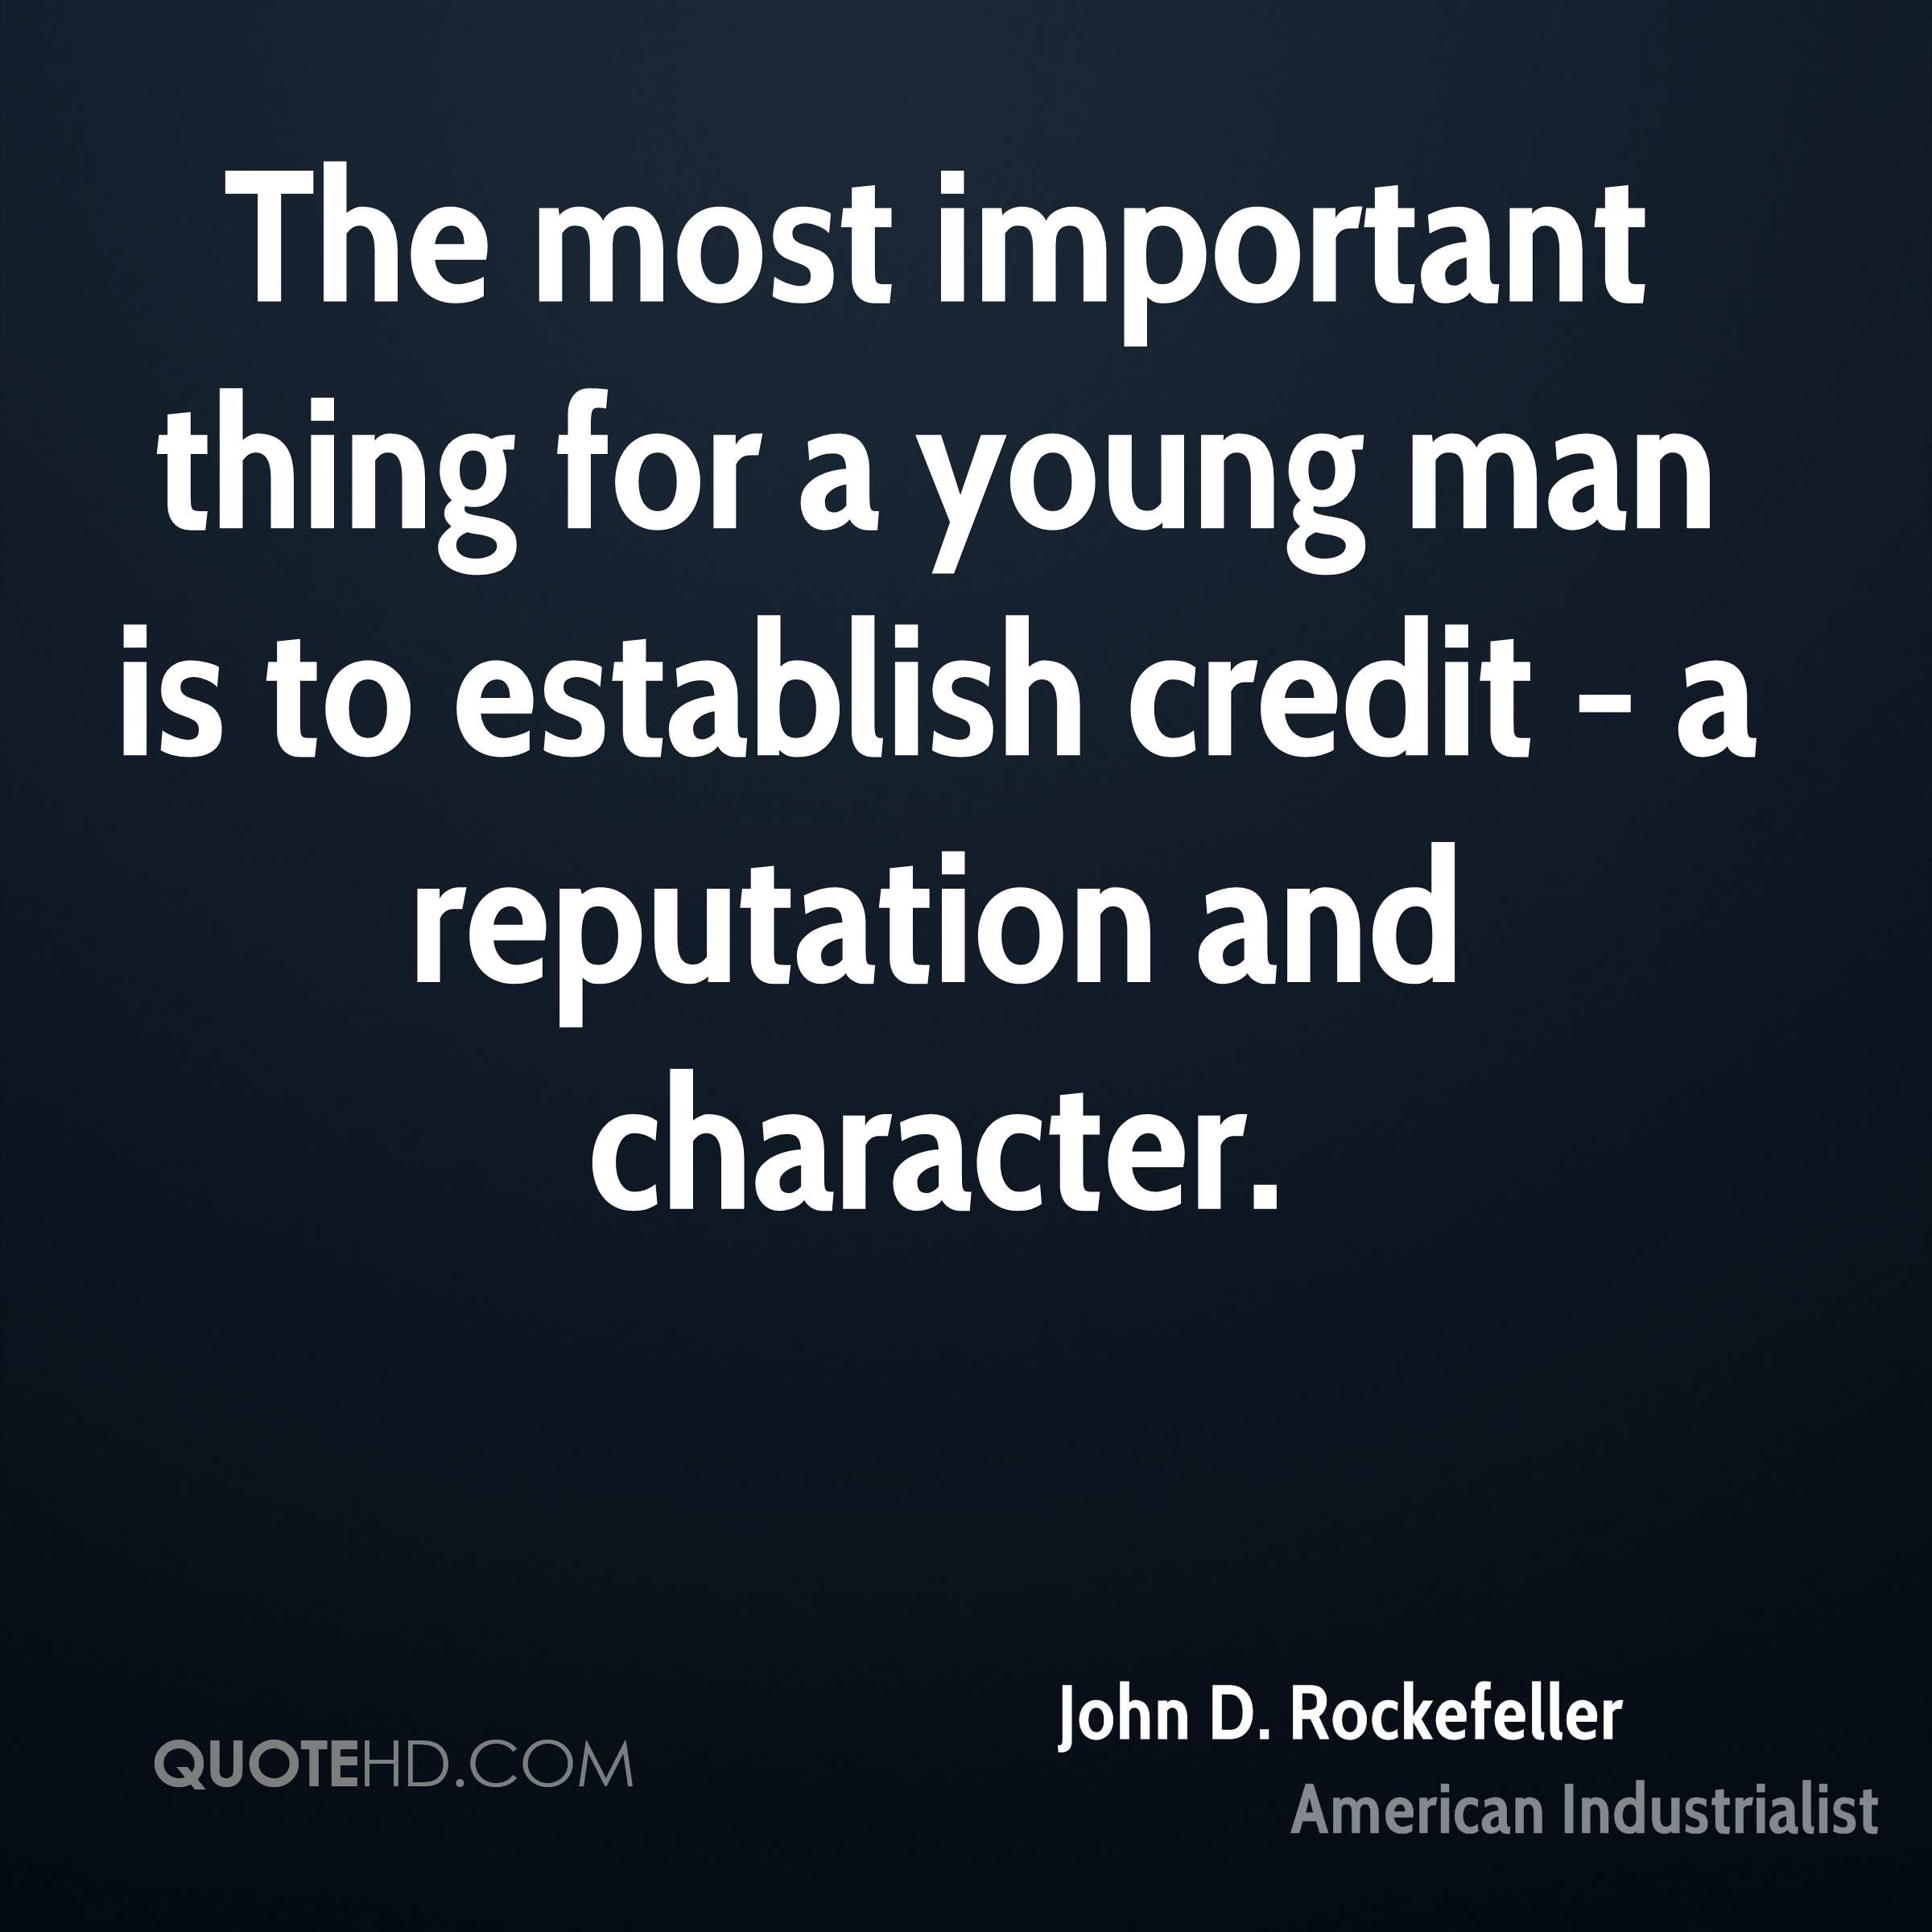 The most important thing for a young man is to establish credit - a reputation and character.